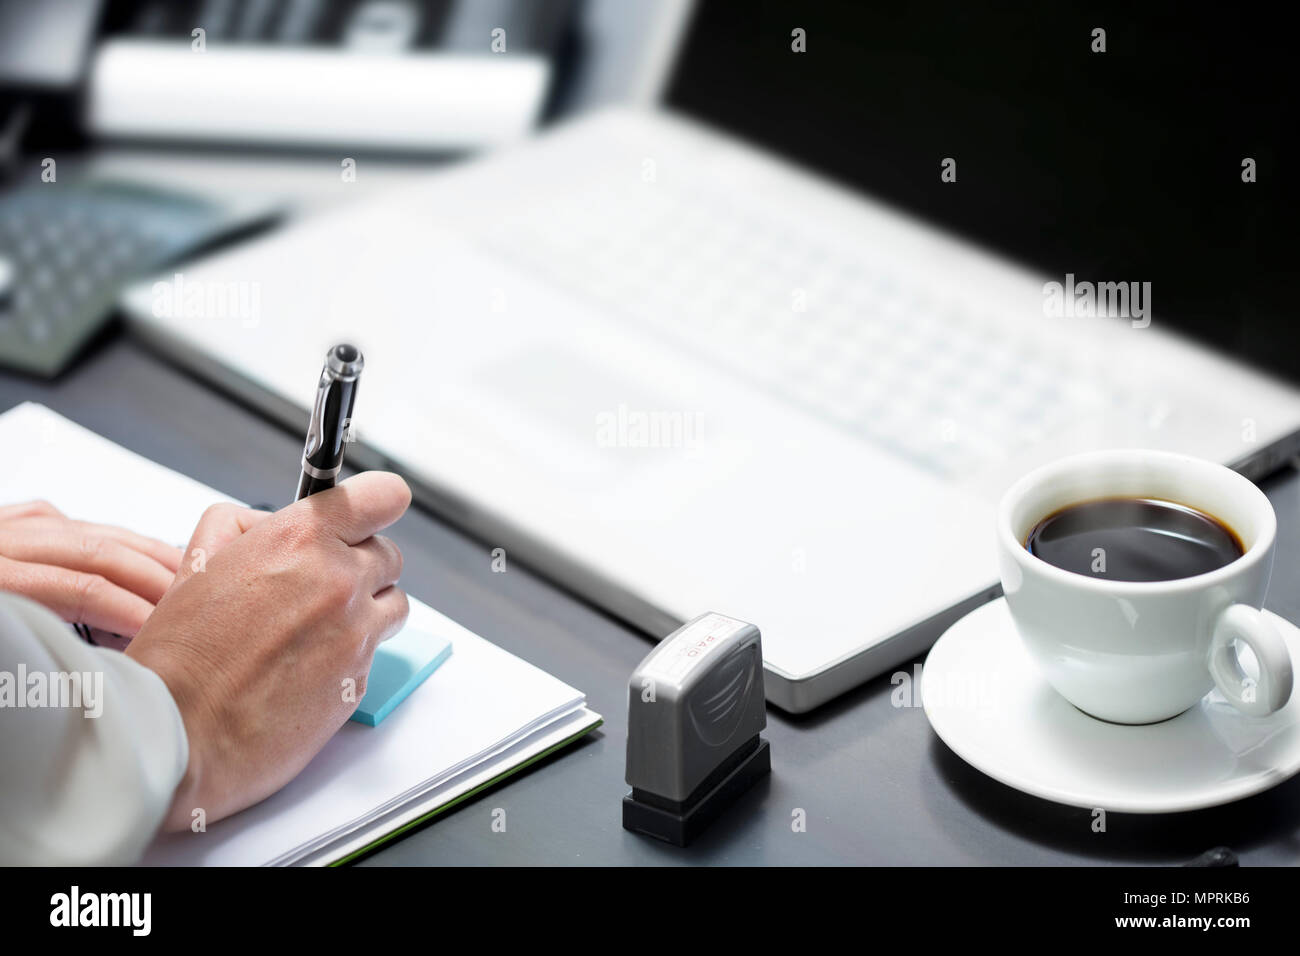 Making notes while working on laptop - Stock Image